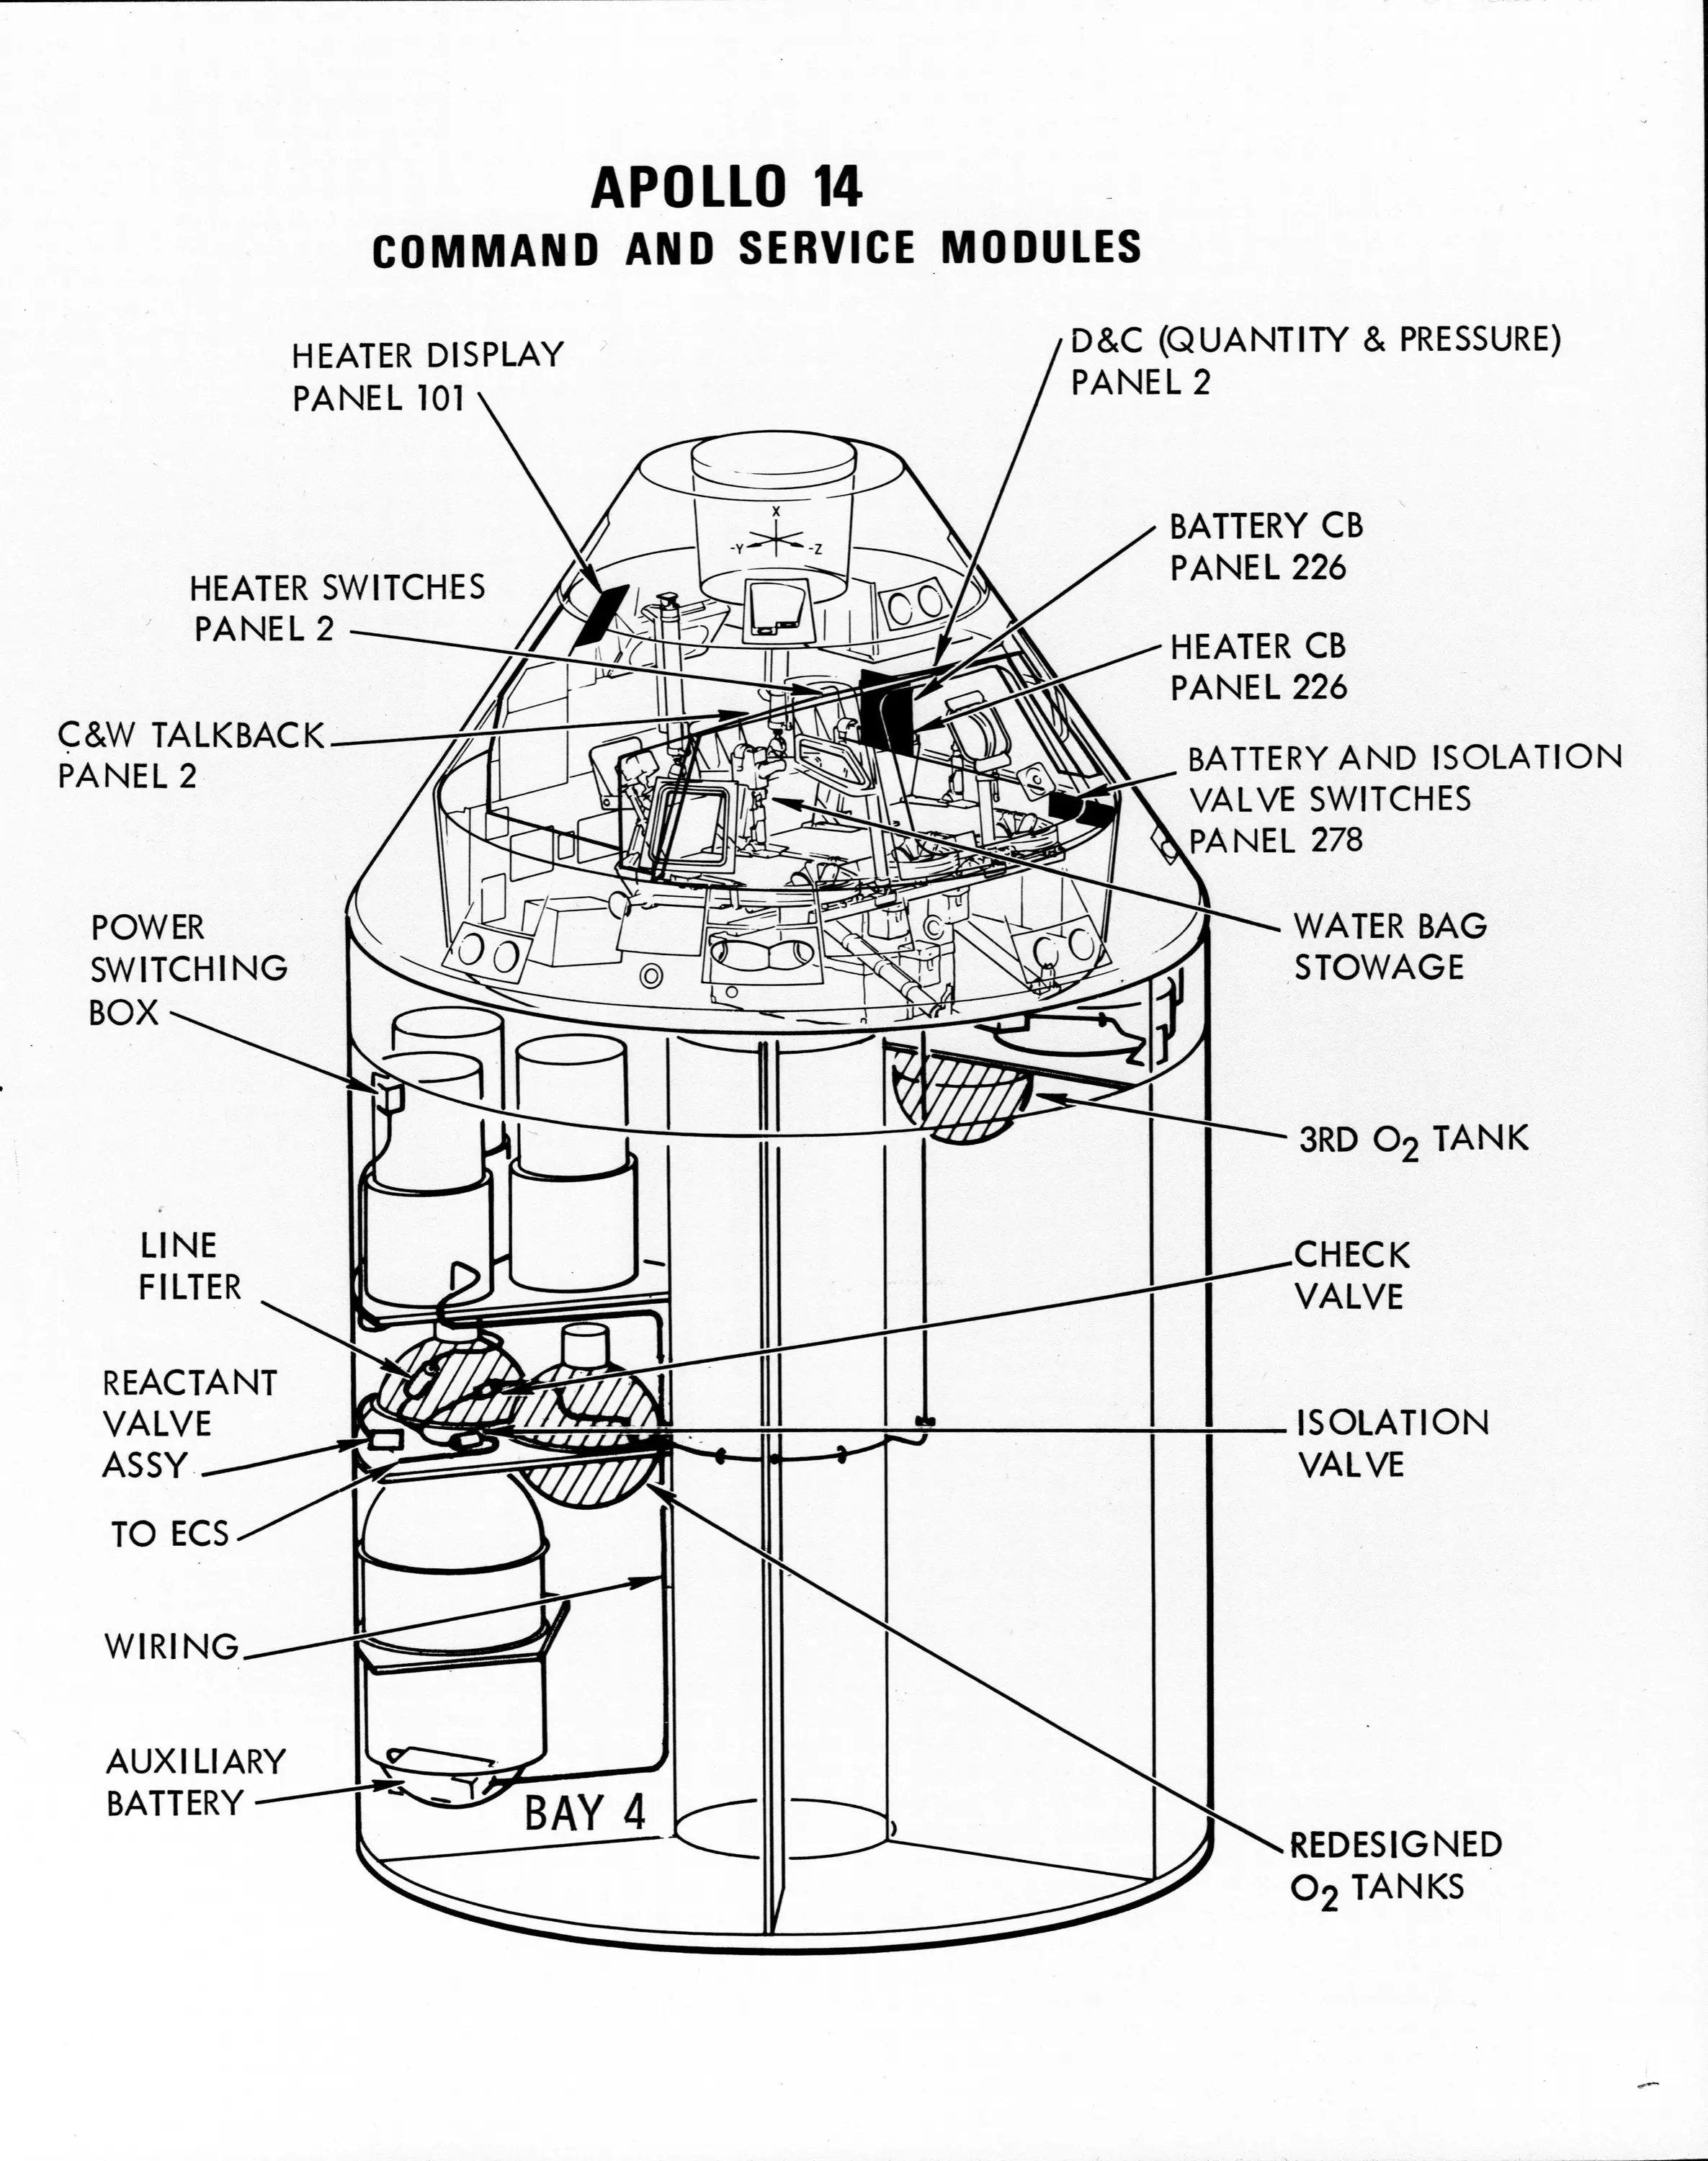 We Could Have Lost The Apollo 11 Crew A Once Classified